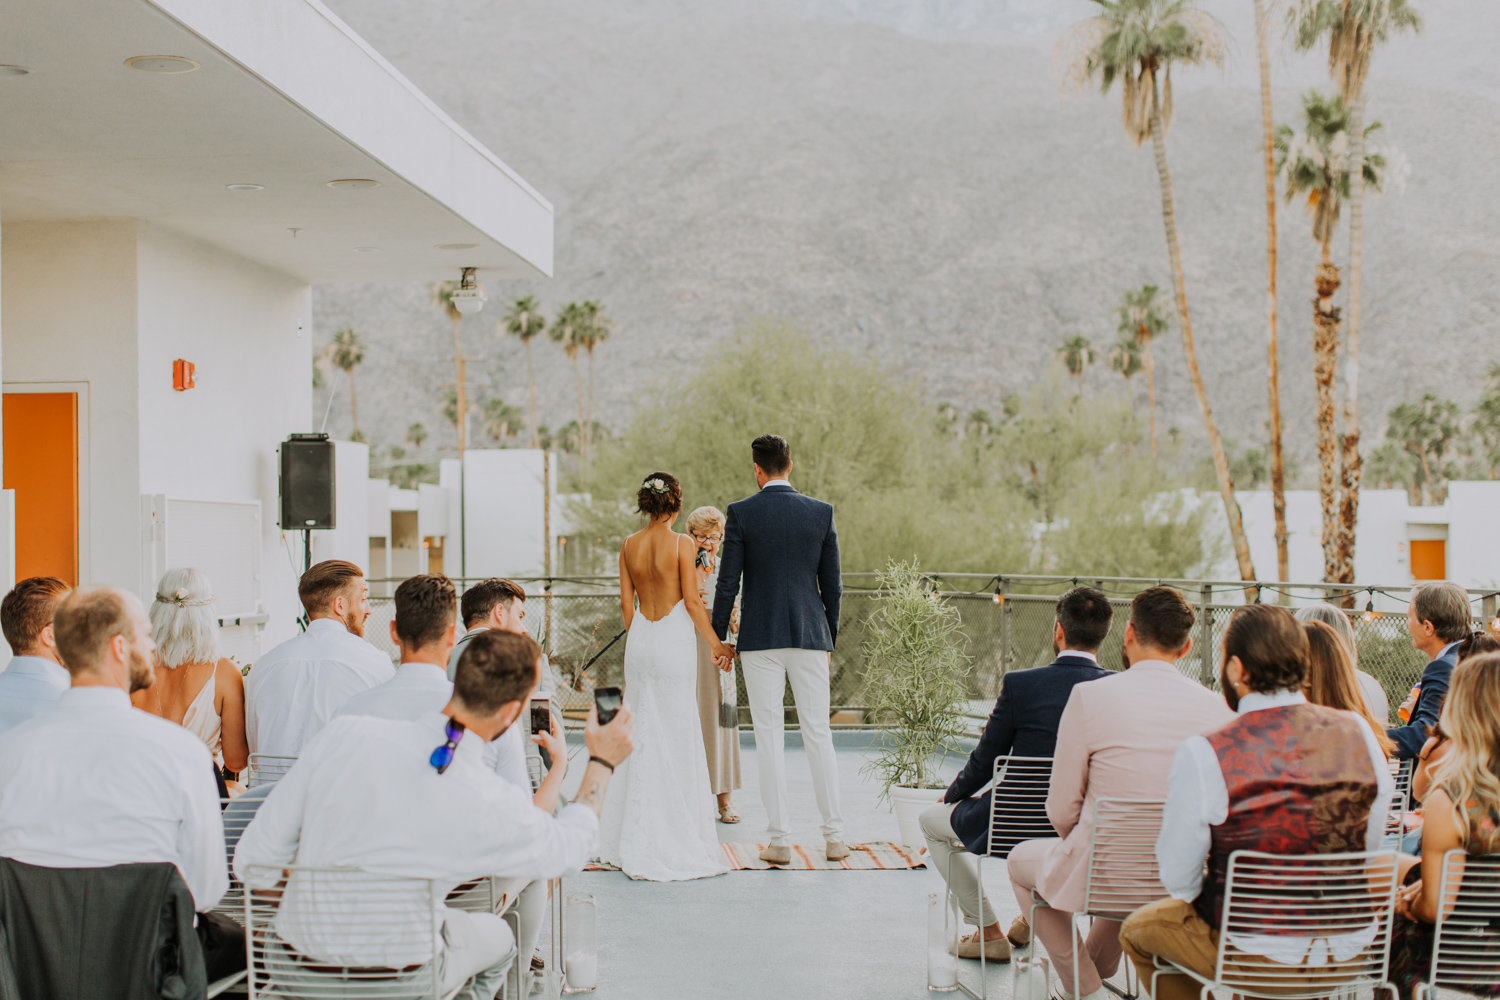 Brianna Broyles_Palm Springs Wedding Photographer_Ace Hotel Wedding_Ace Hotel Palm Springs-46